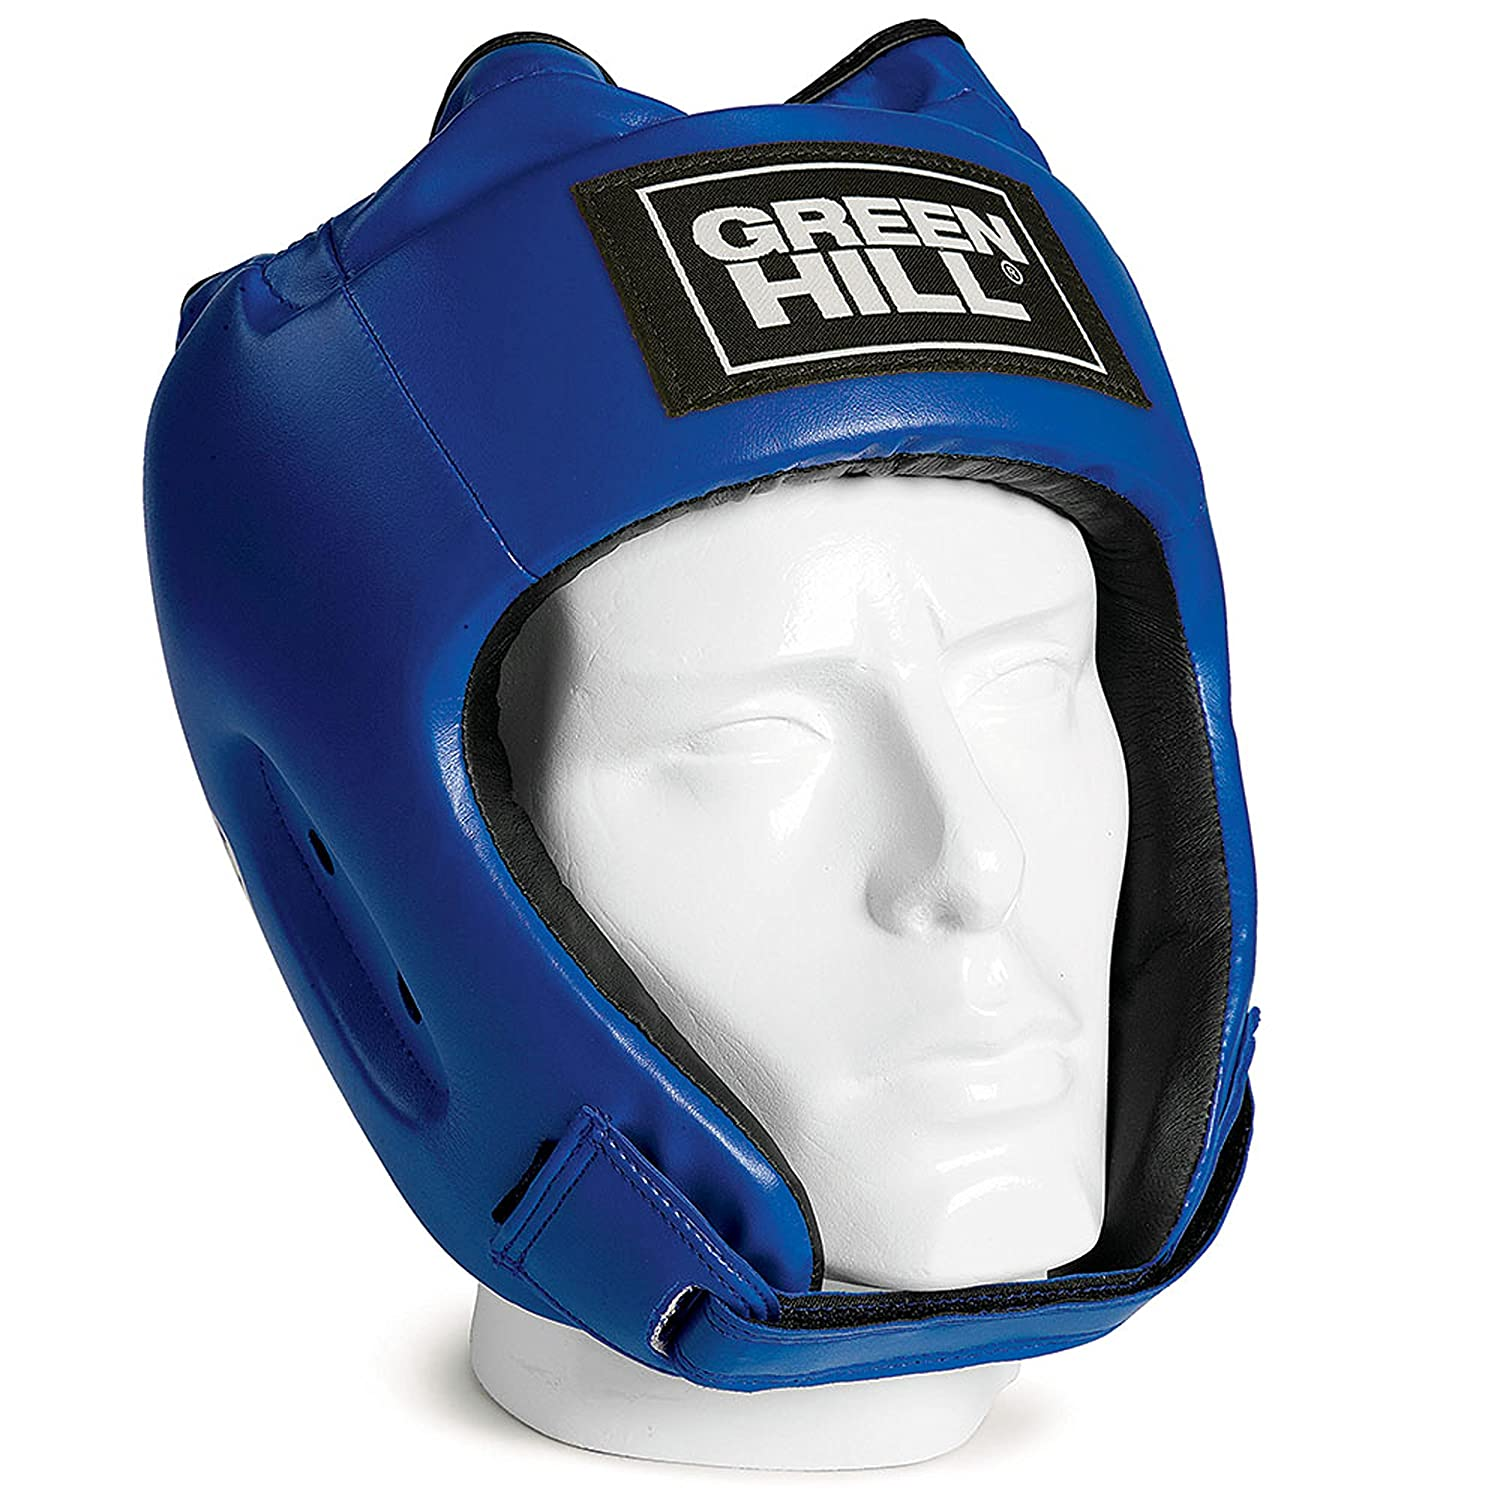 Semi Contact Head Guard Helmet Kopfschutz Helm for Boxing Head Gear Kopfbedeckung Kick Boxing Thai Kick Boxing Greenhill Alfa Head Guard Kopfschutz Fighting and Combat Training